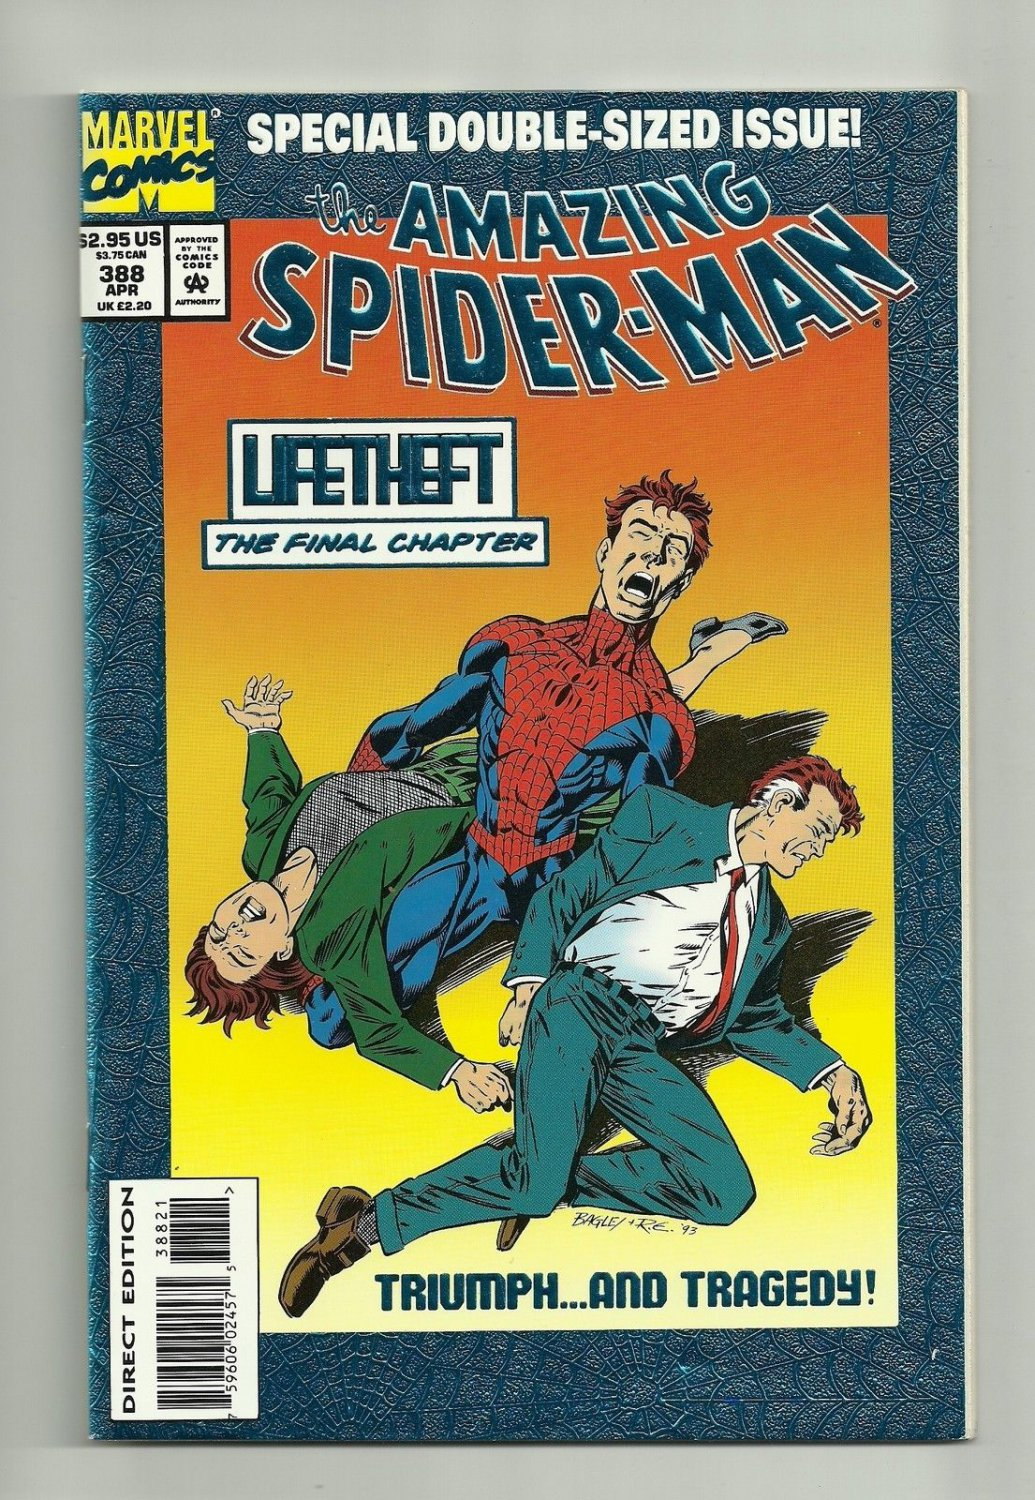 The Amazing Spider-Man #388 (Apr 1994, Marvel)